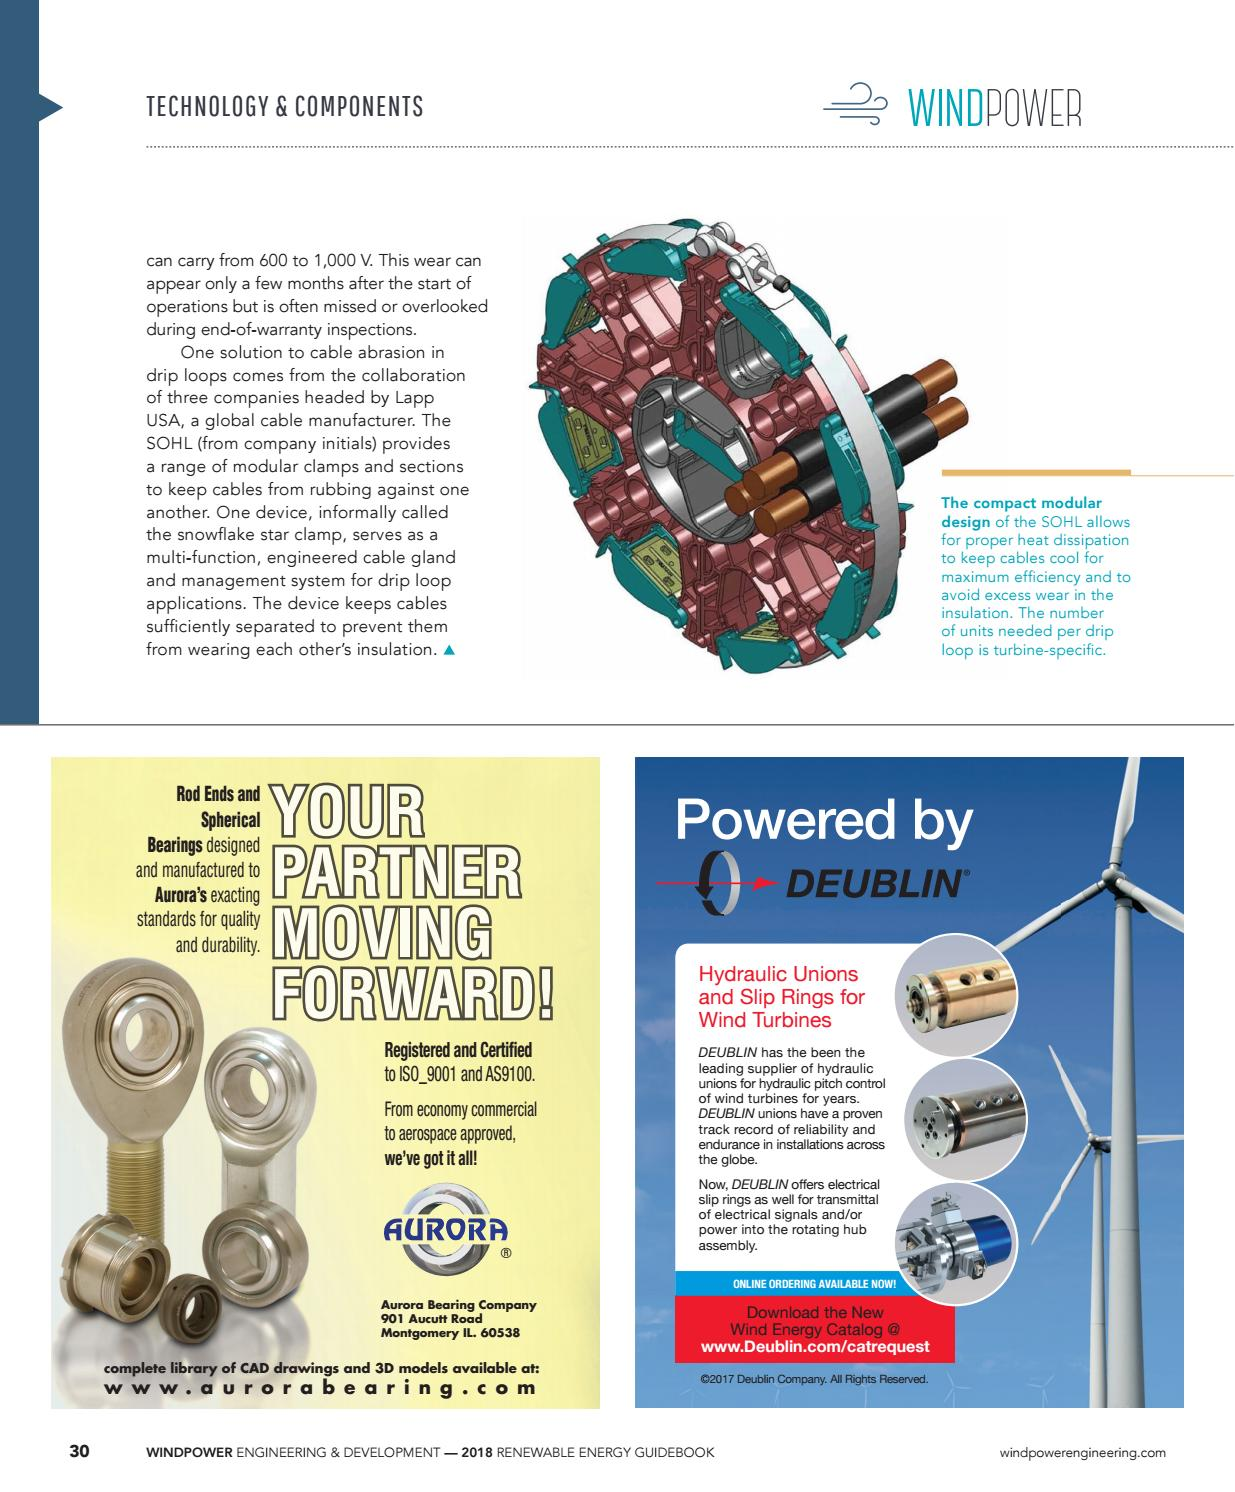 2018 Renewable Energy Guidebook (Wind) by WTWH Media LLC - issuu